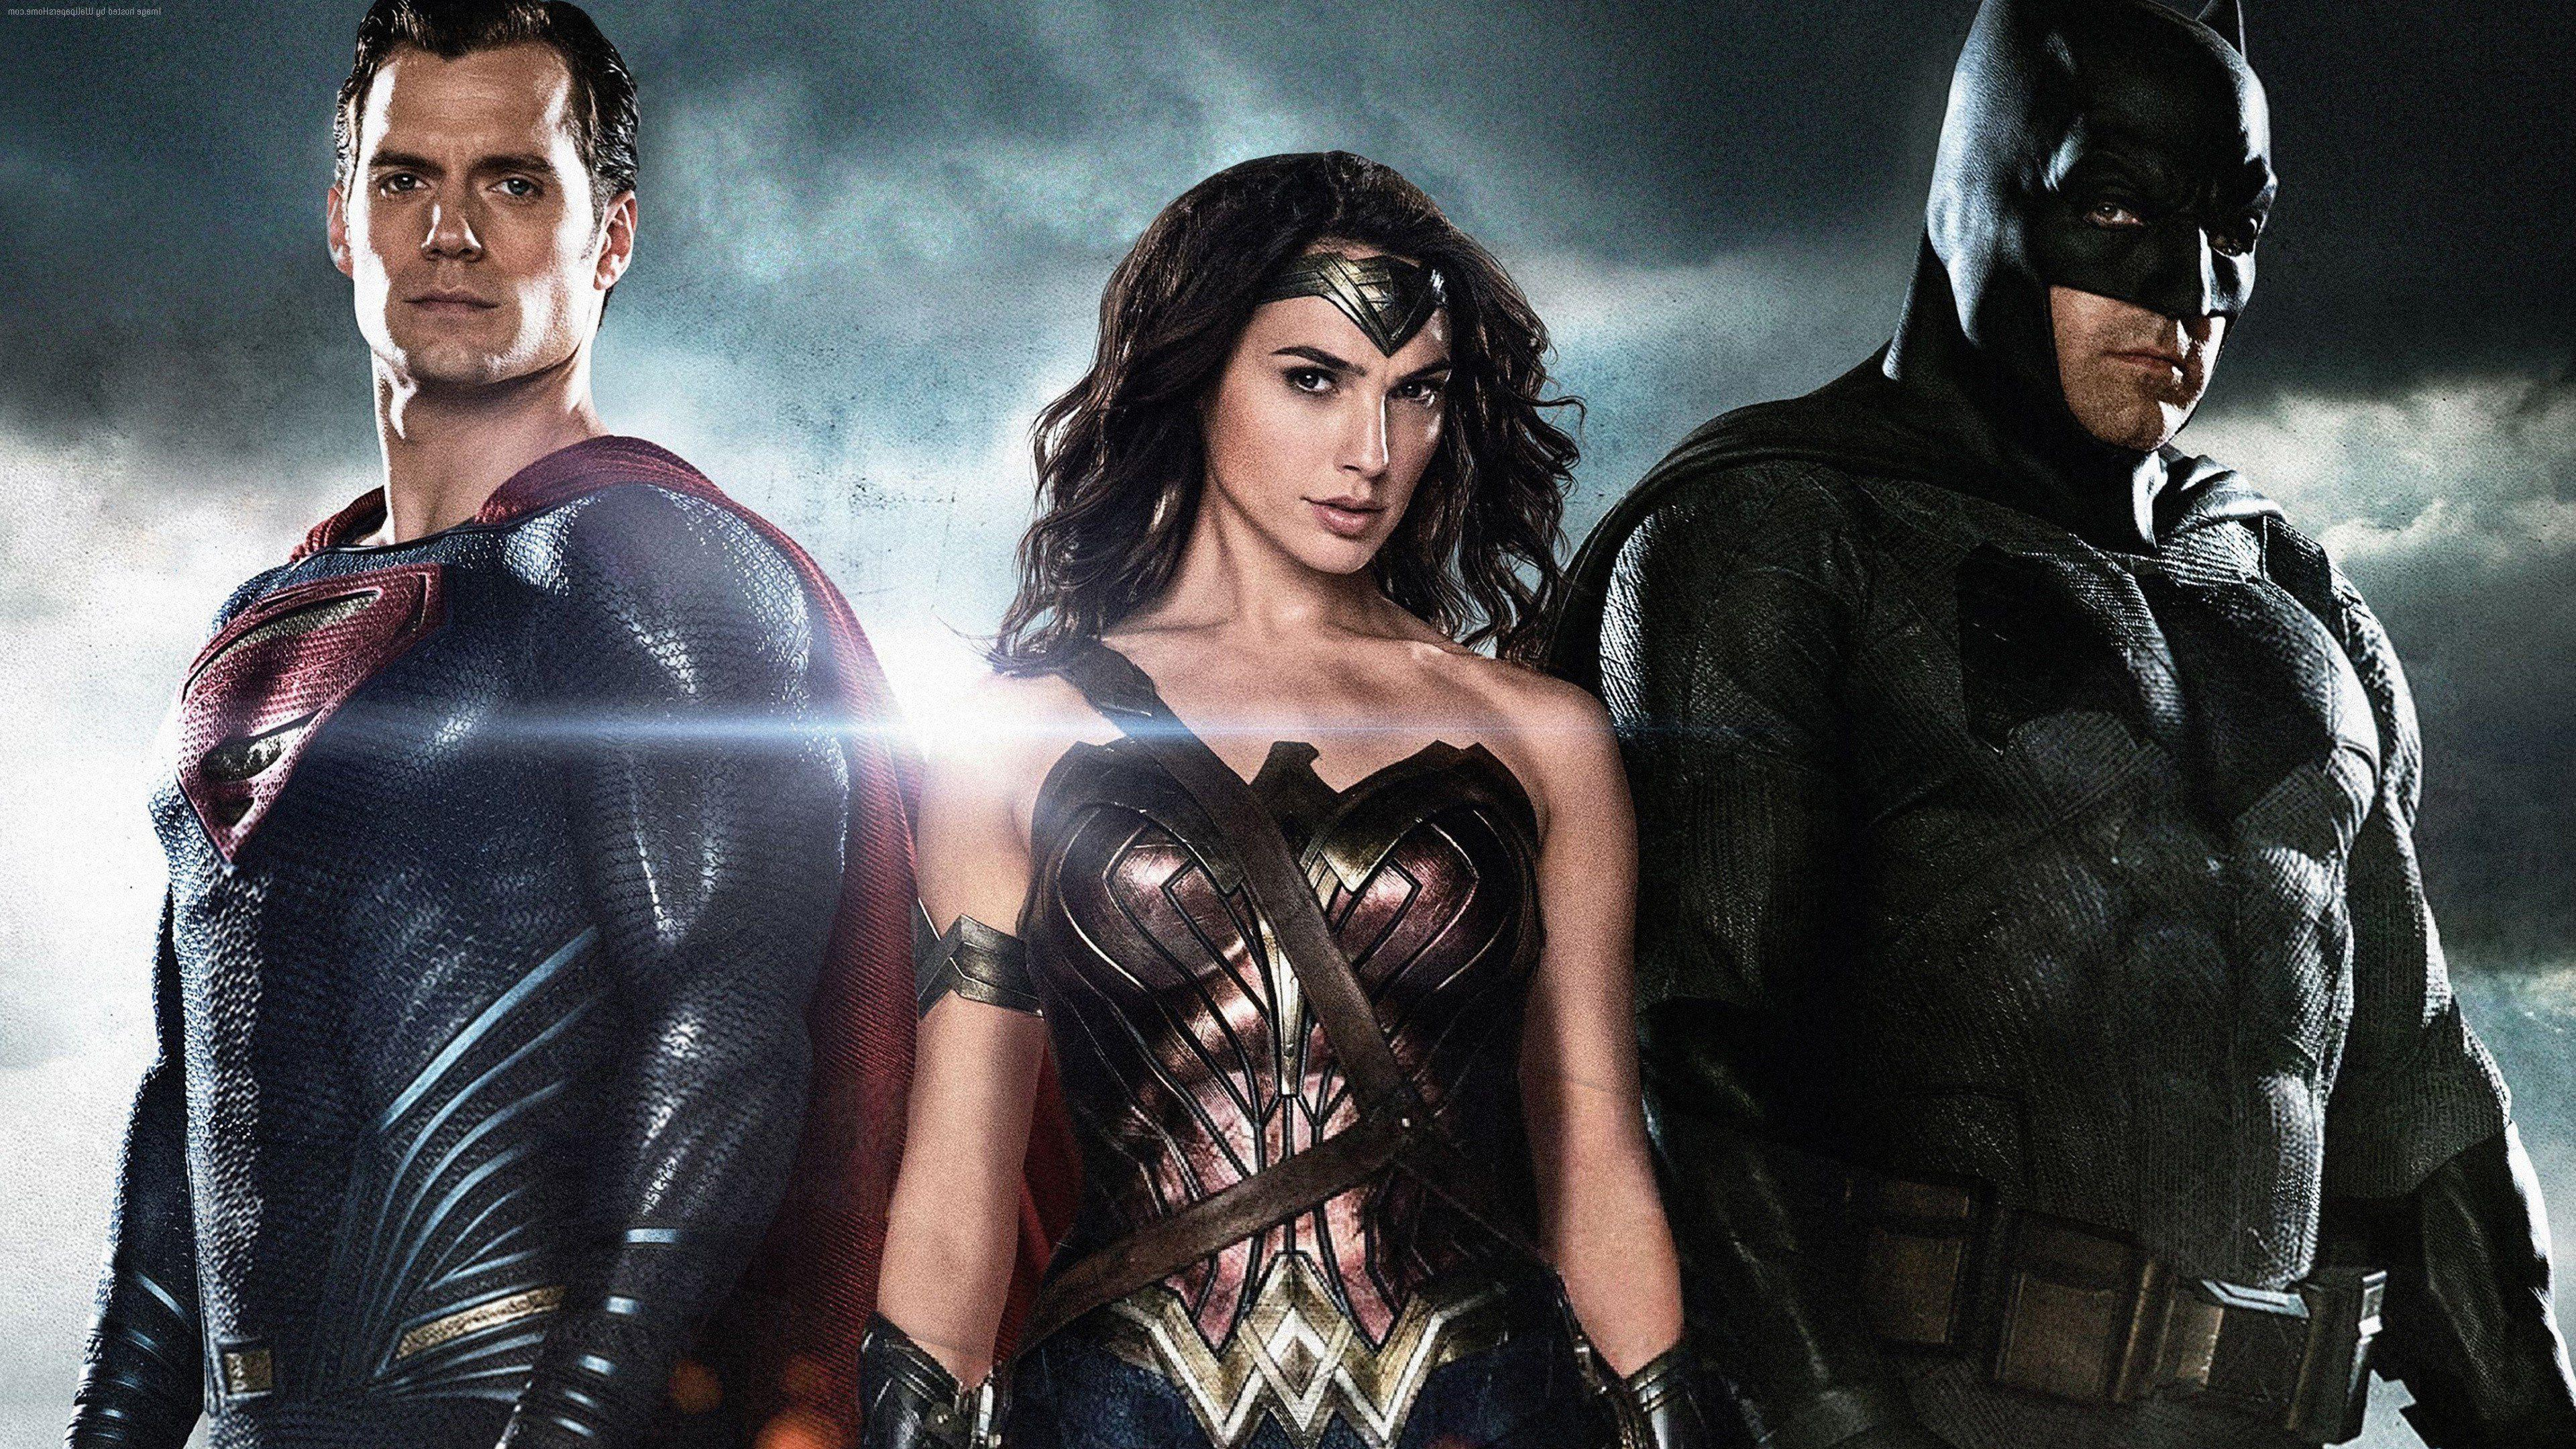 Batman Superman Wonder Woman Wallpaper | Movies HD Wallpapers